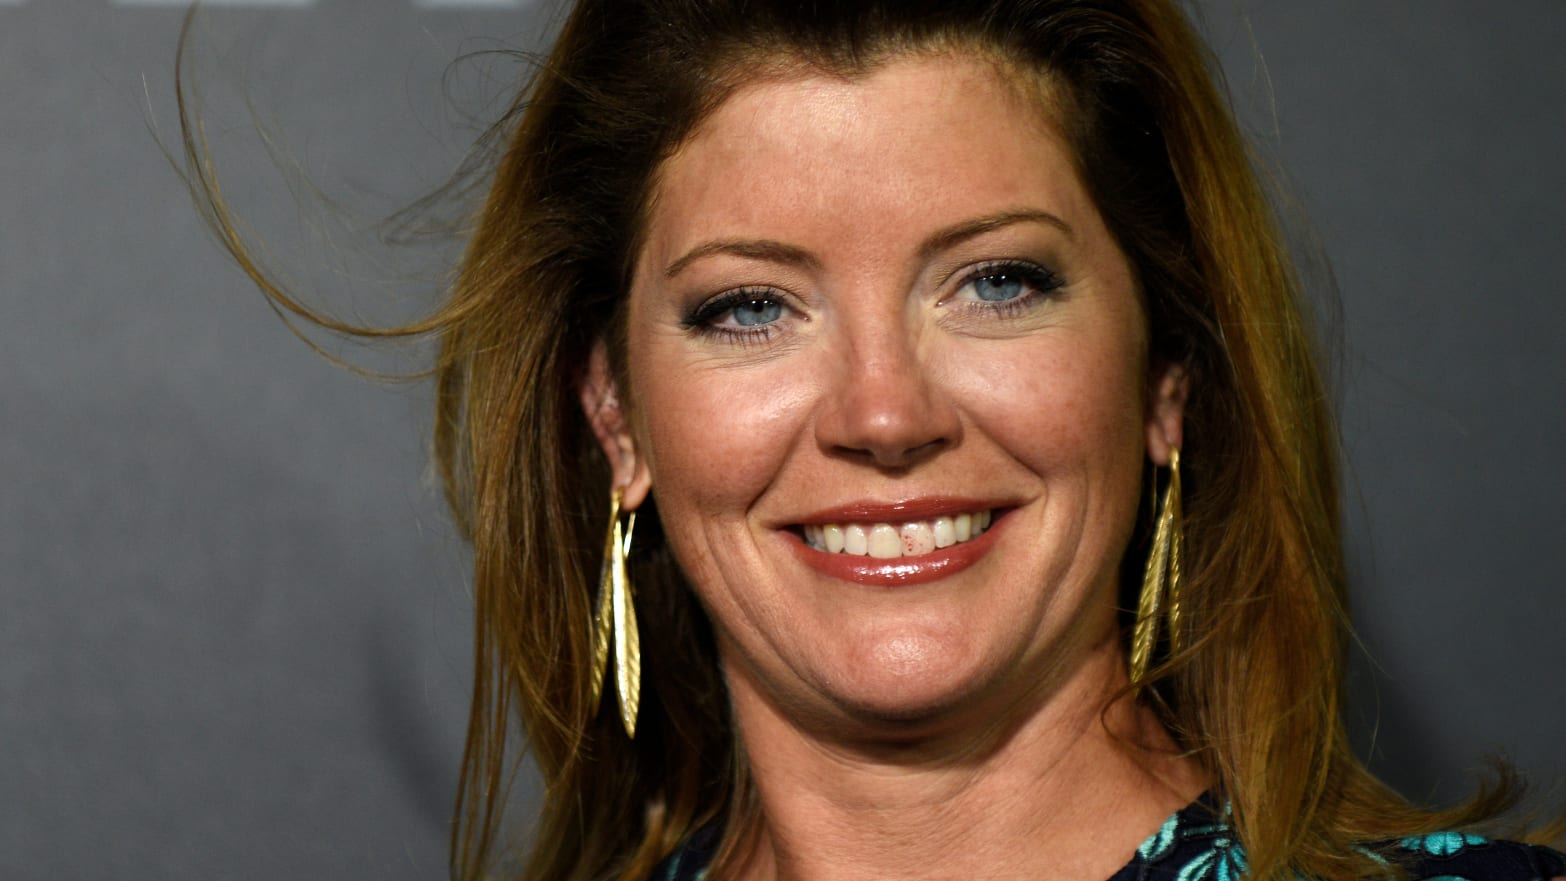 Norah O'Donnell Is the New 'CBS Evening News' Anchor